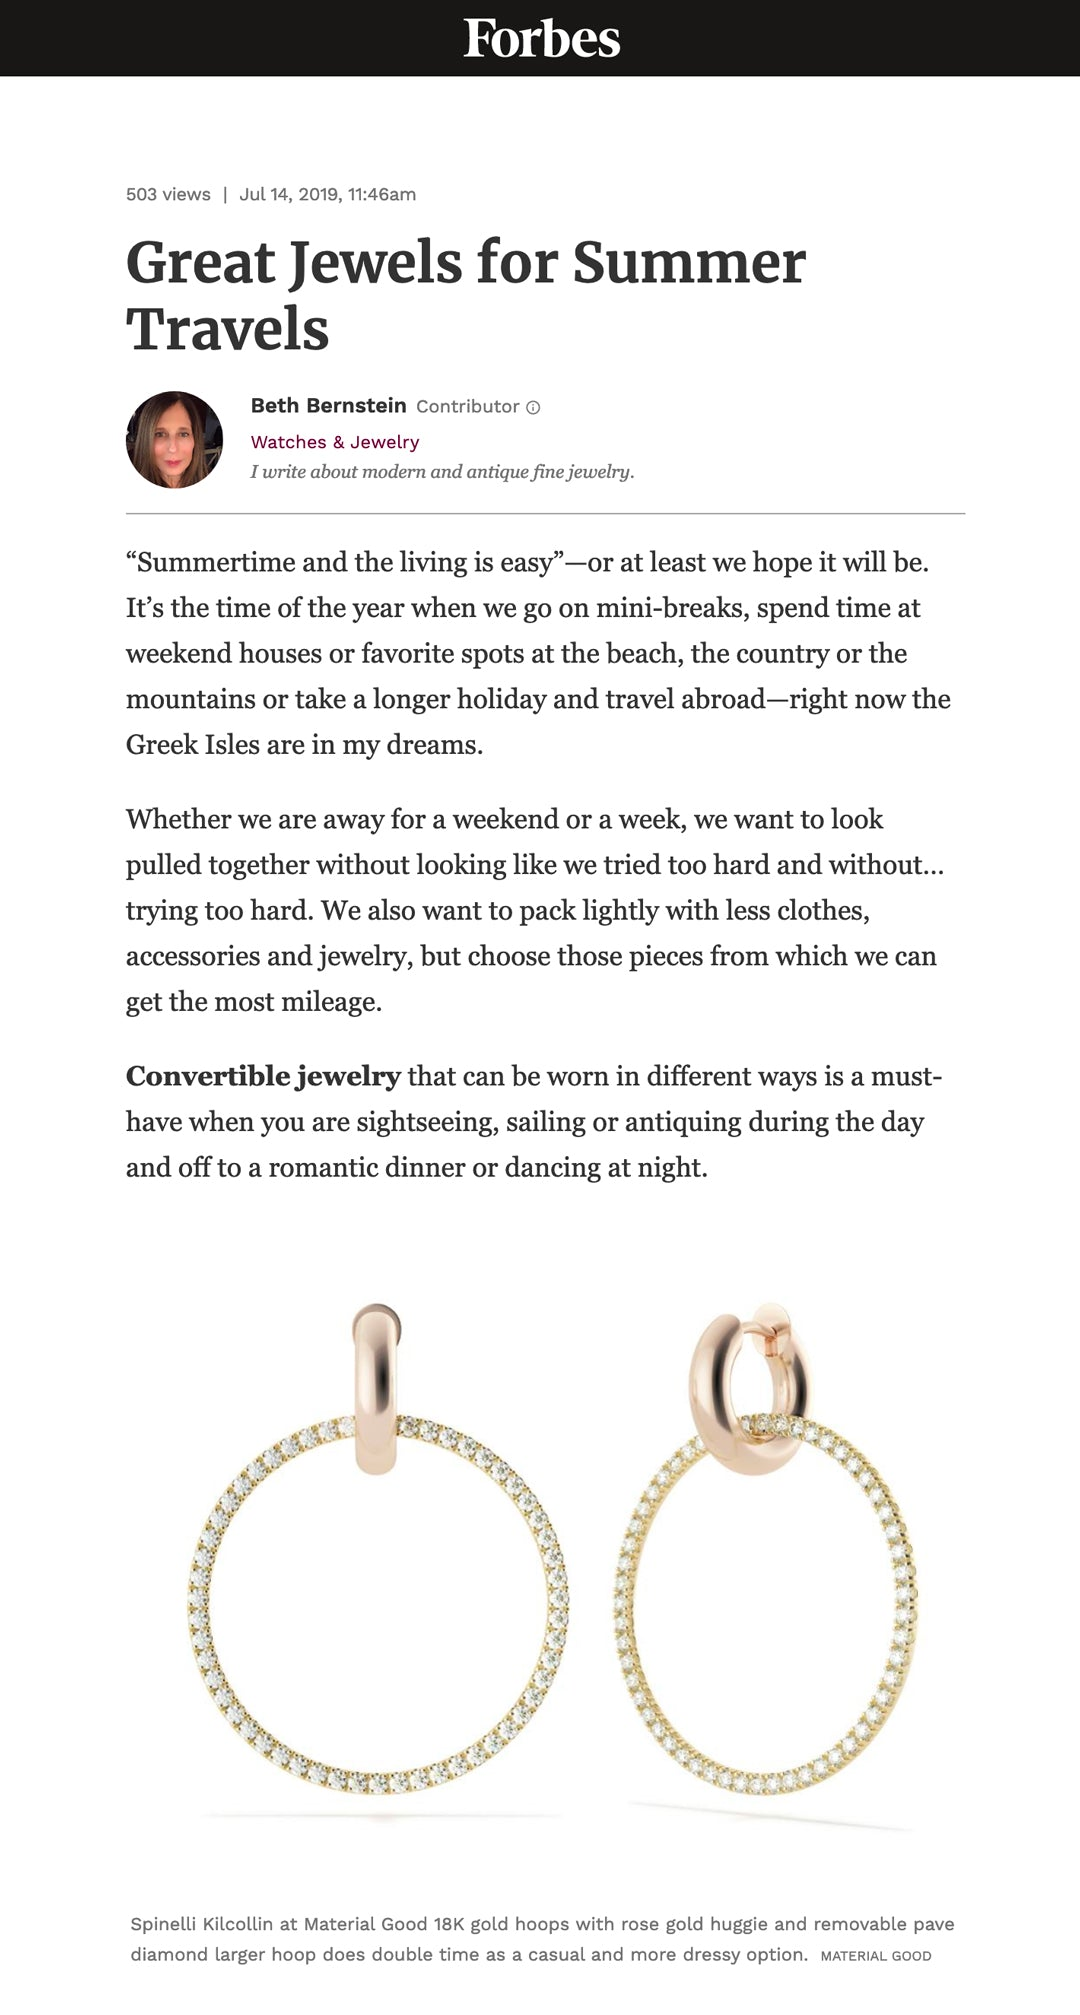 forbes spinelli kilcollin linked-rings earrings linked-earrings luxury-jewelry casseus sp earrings